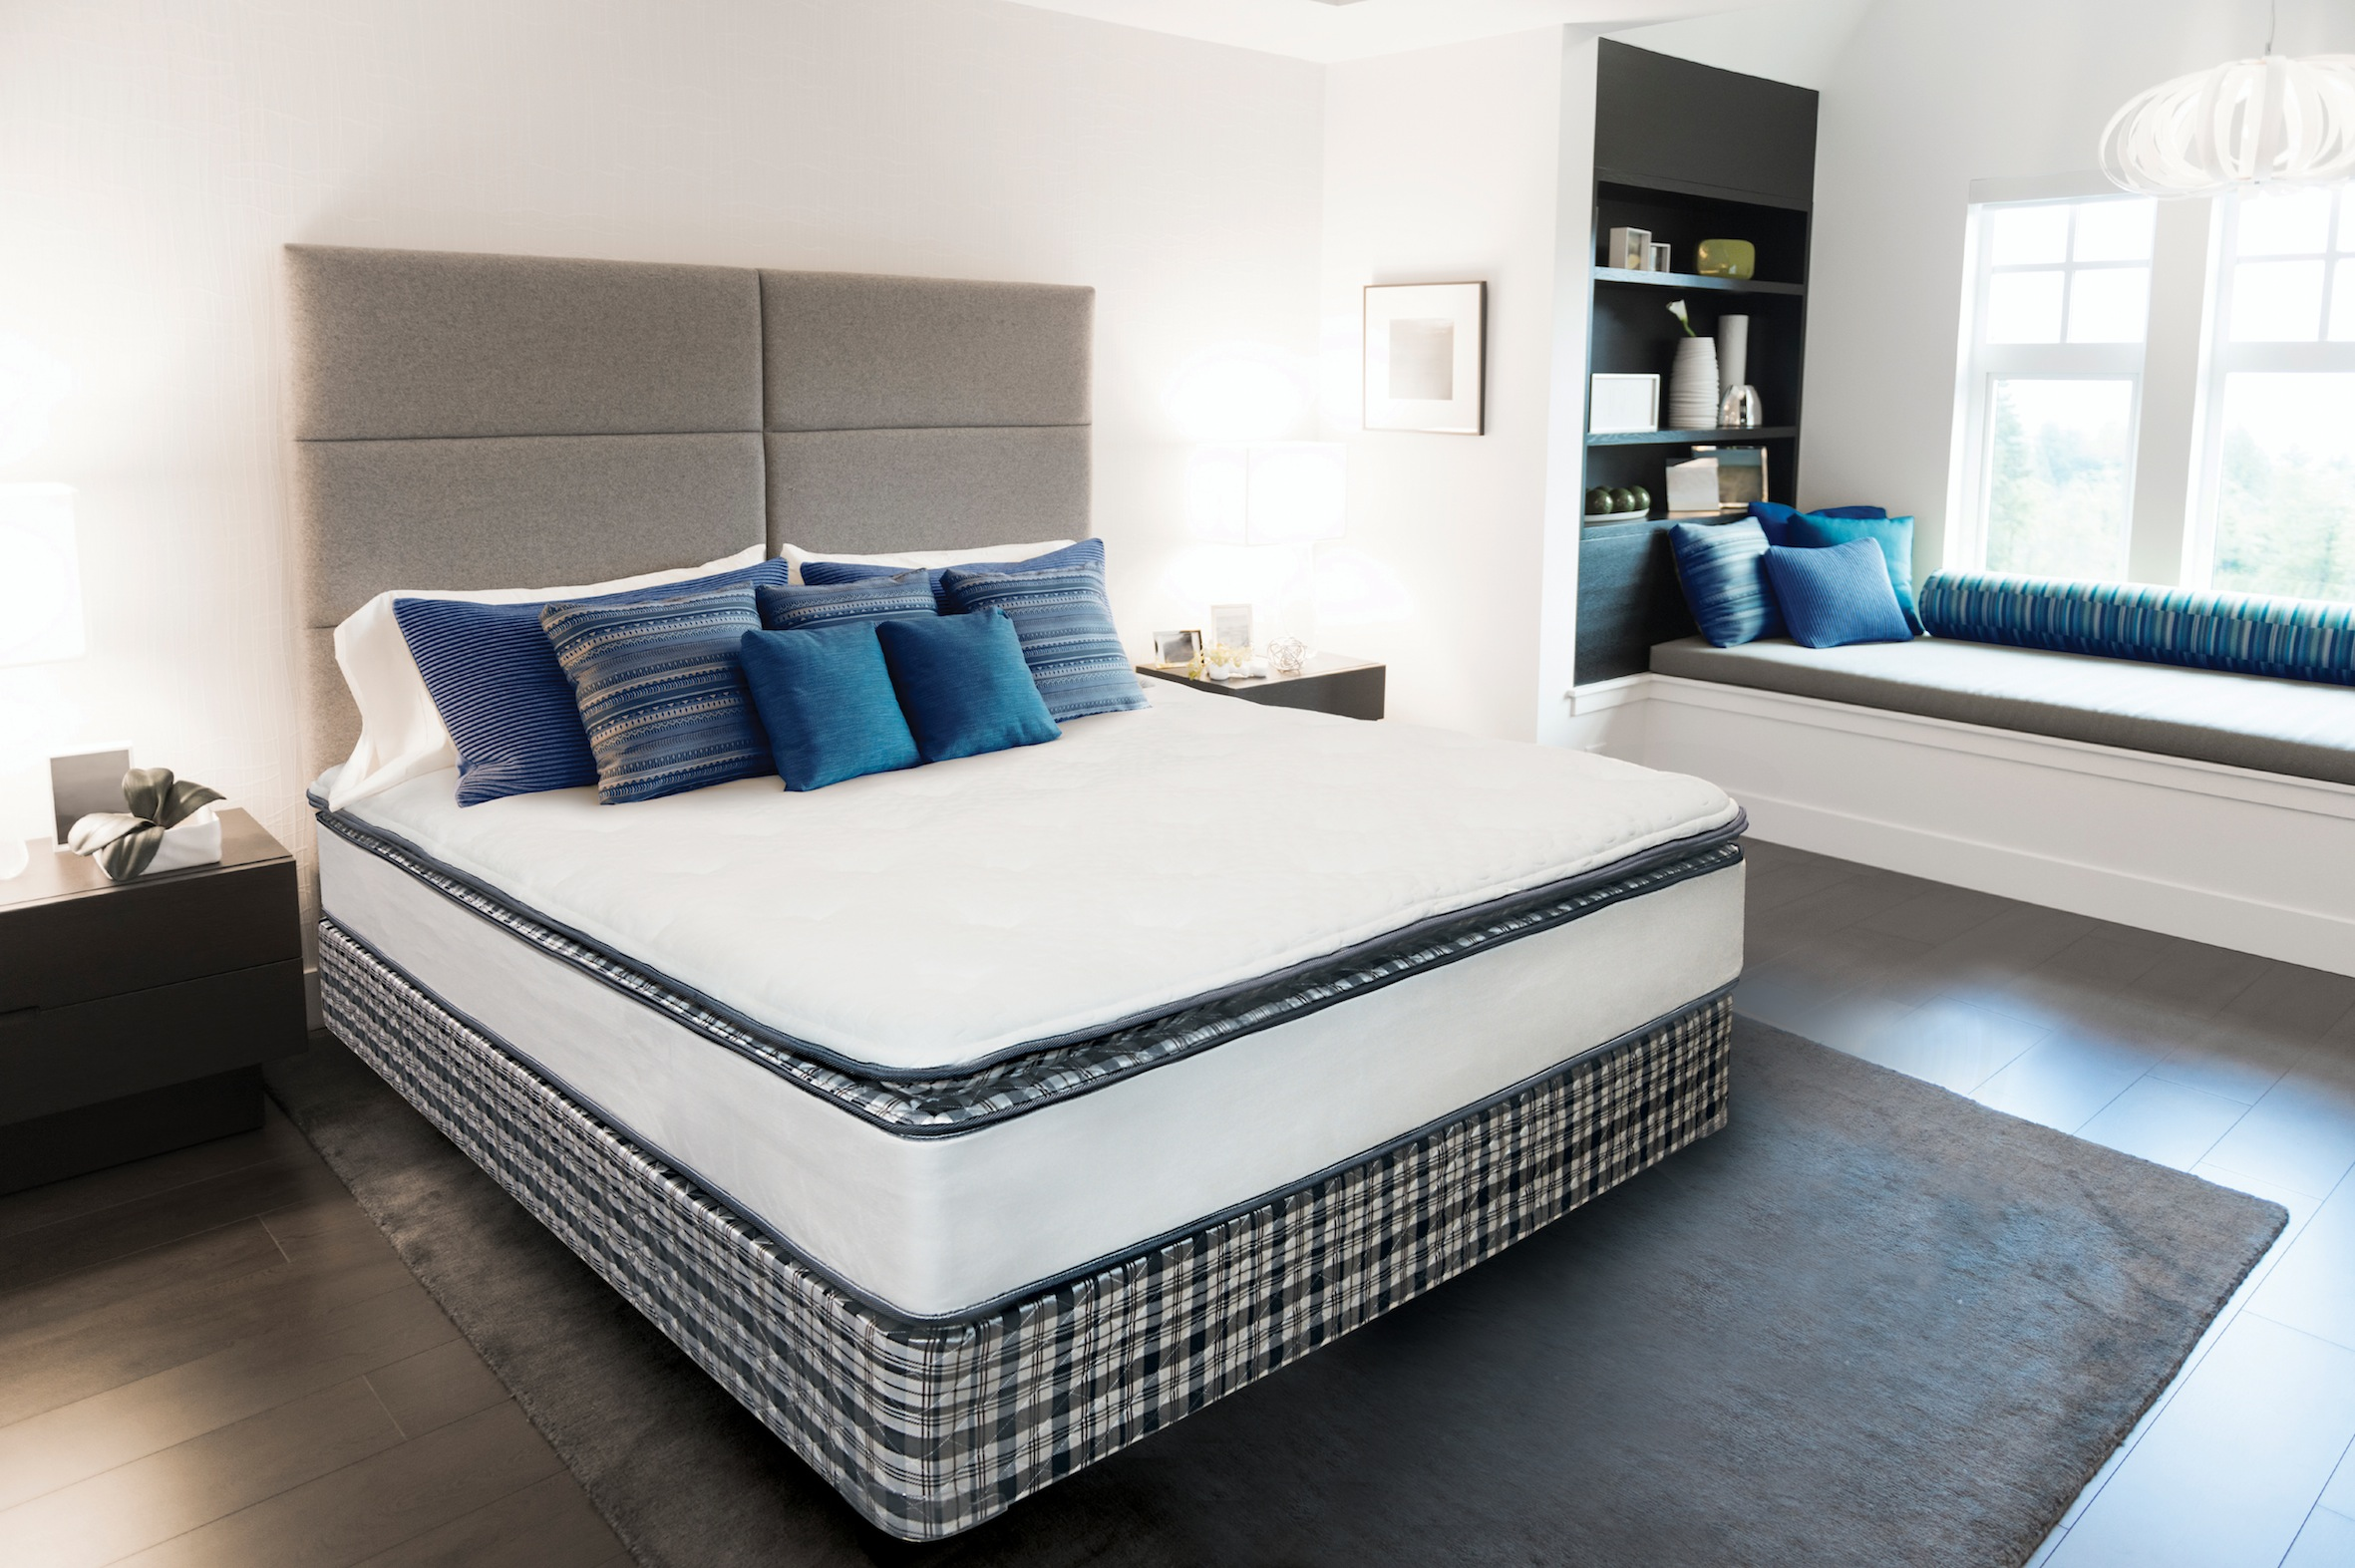 a modern bedroom / you could say it is stylish / contemporary